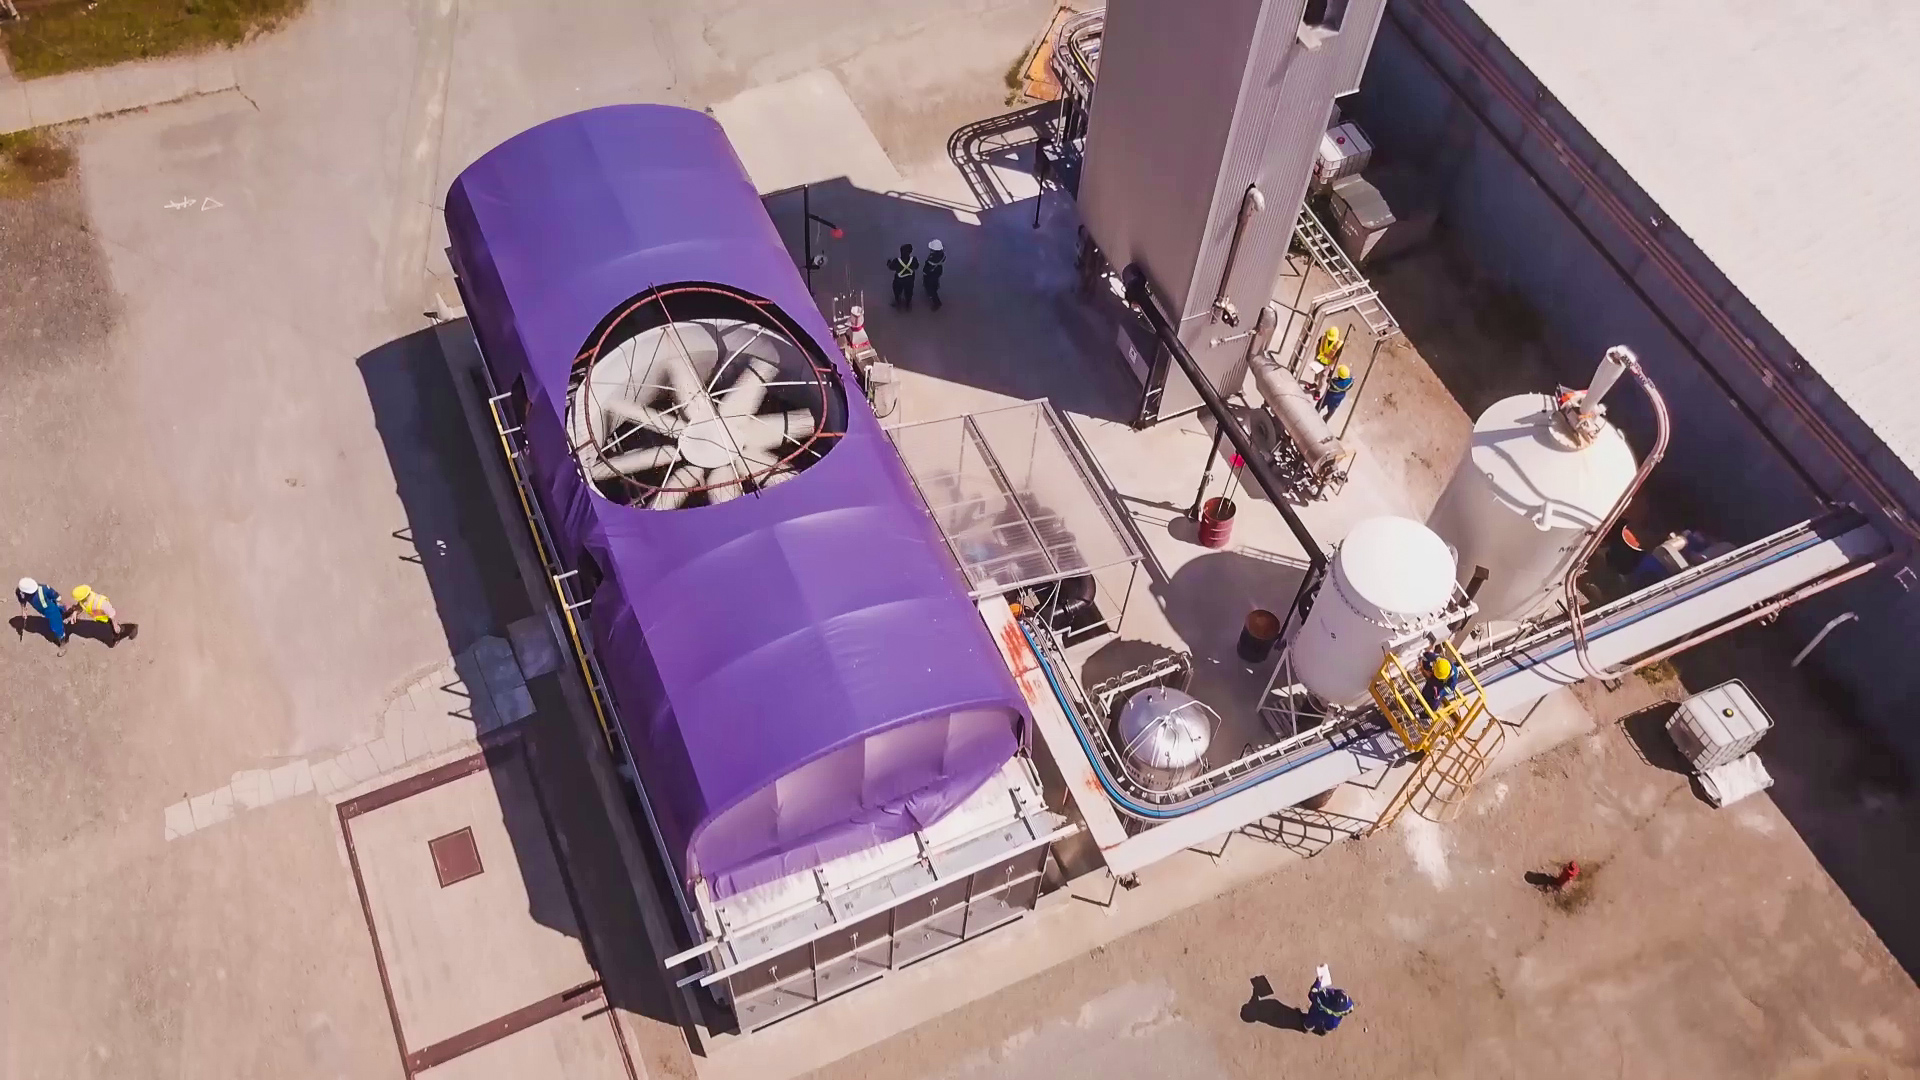 The story behind the world's first large direct air capture